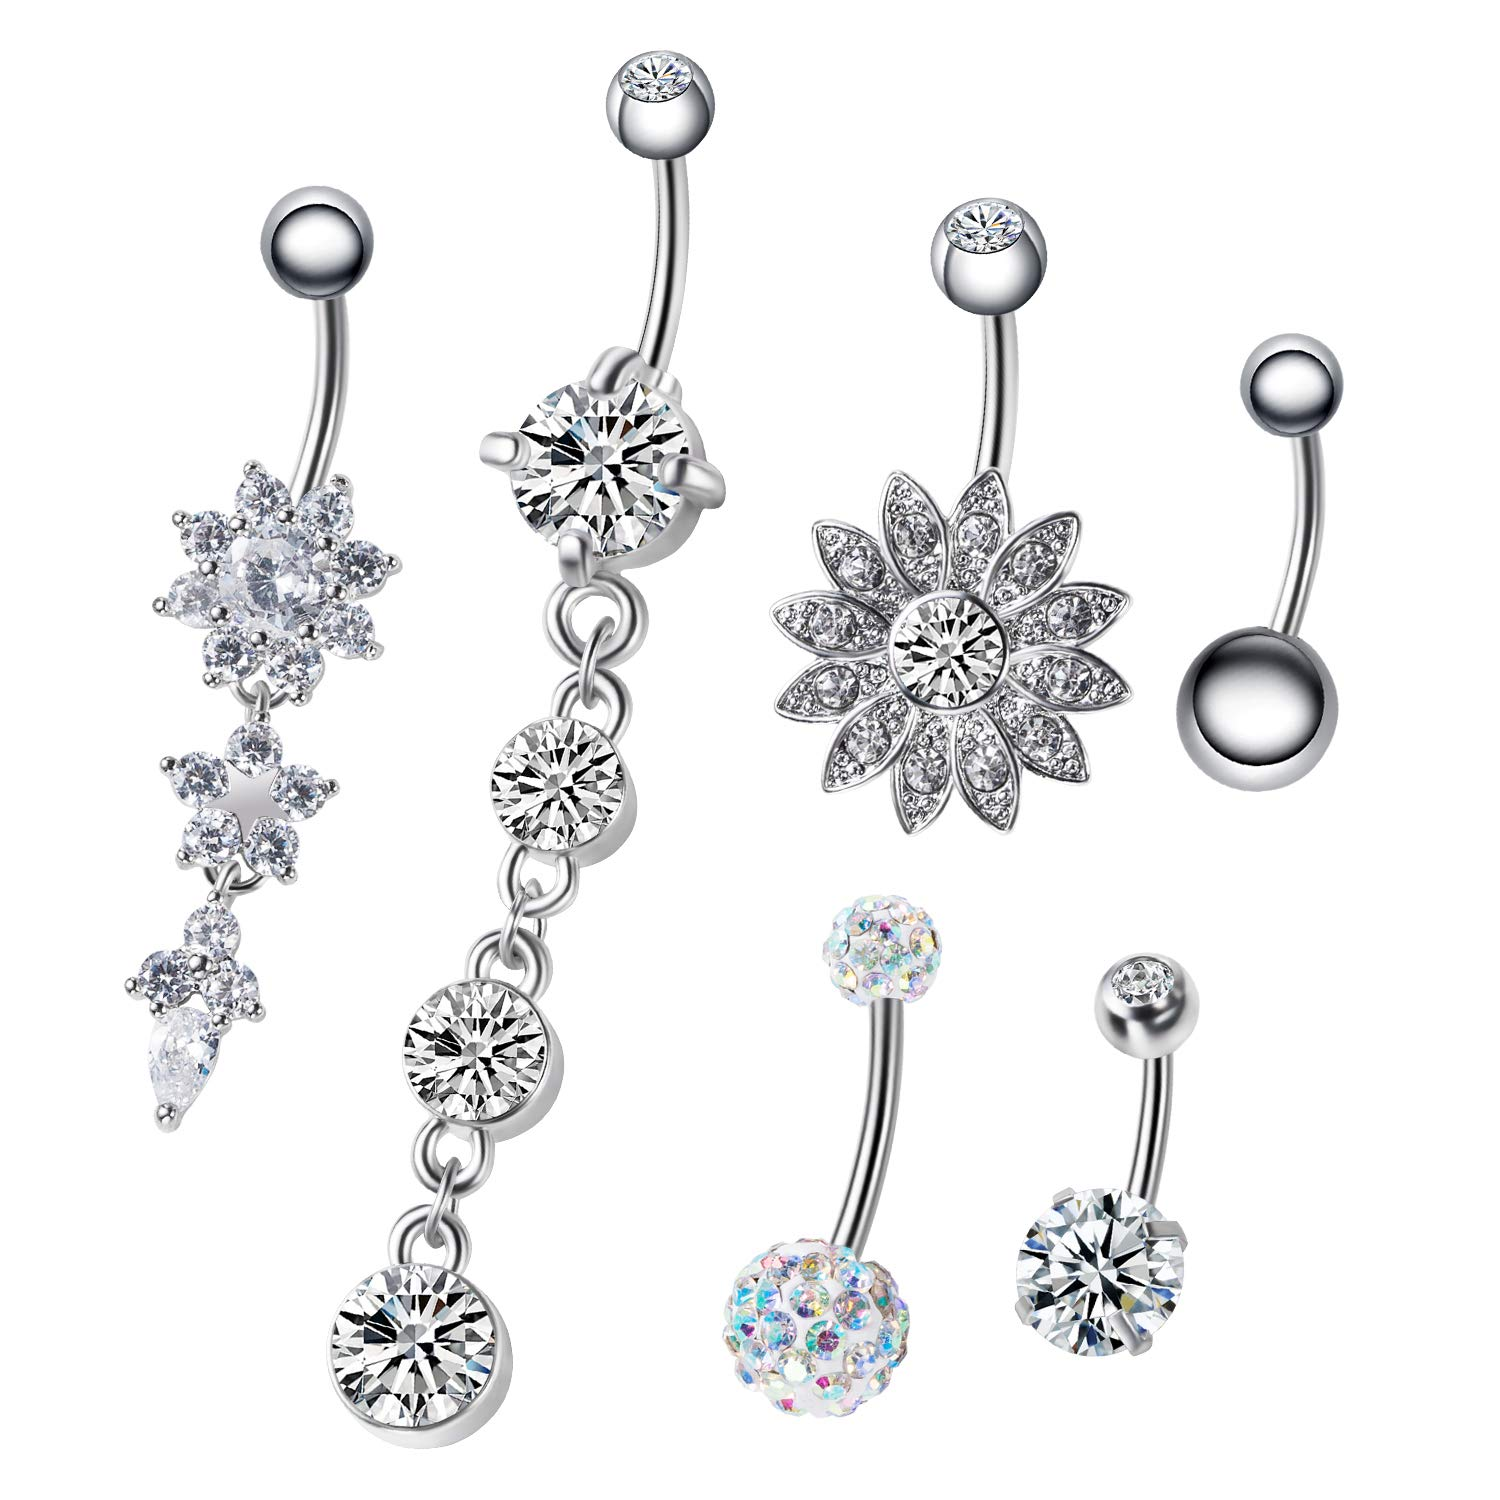 NASAMA Stainless Dangle Piercing Style1 6pcs